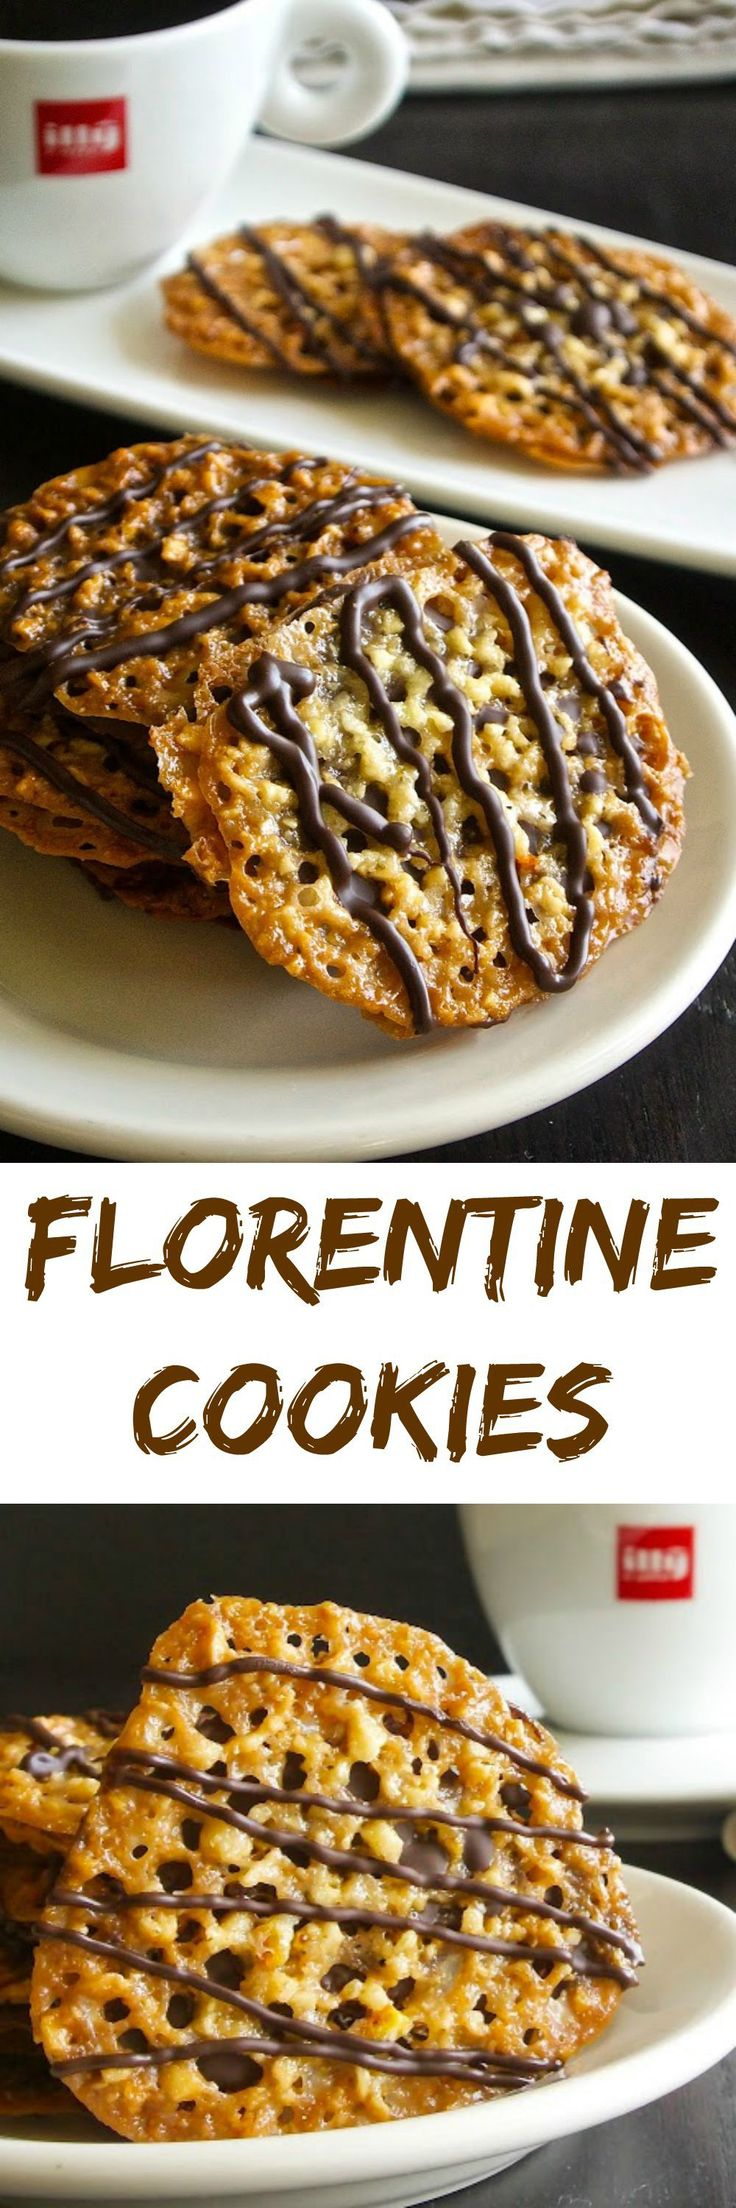 25+ best ideas about Florentine cookies on Pinterest ...